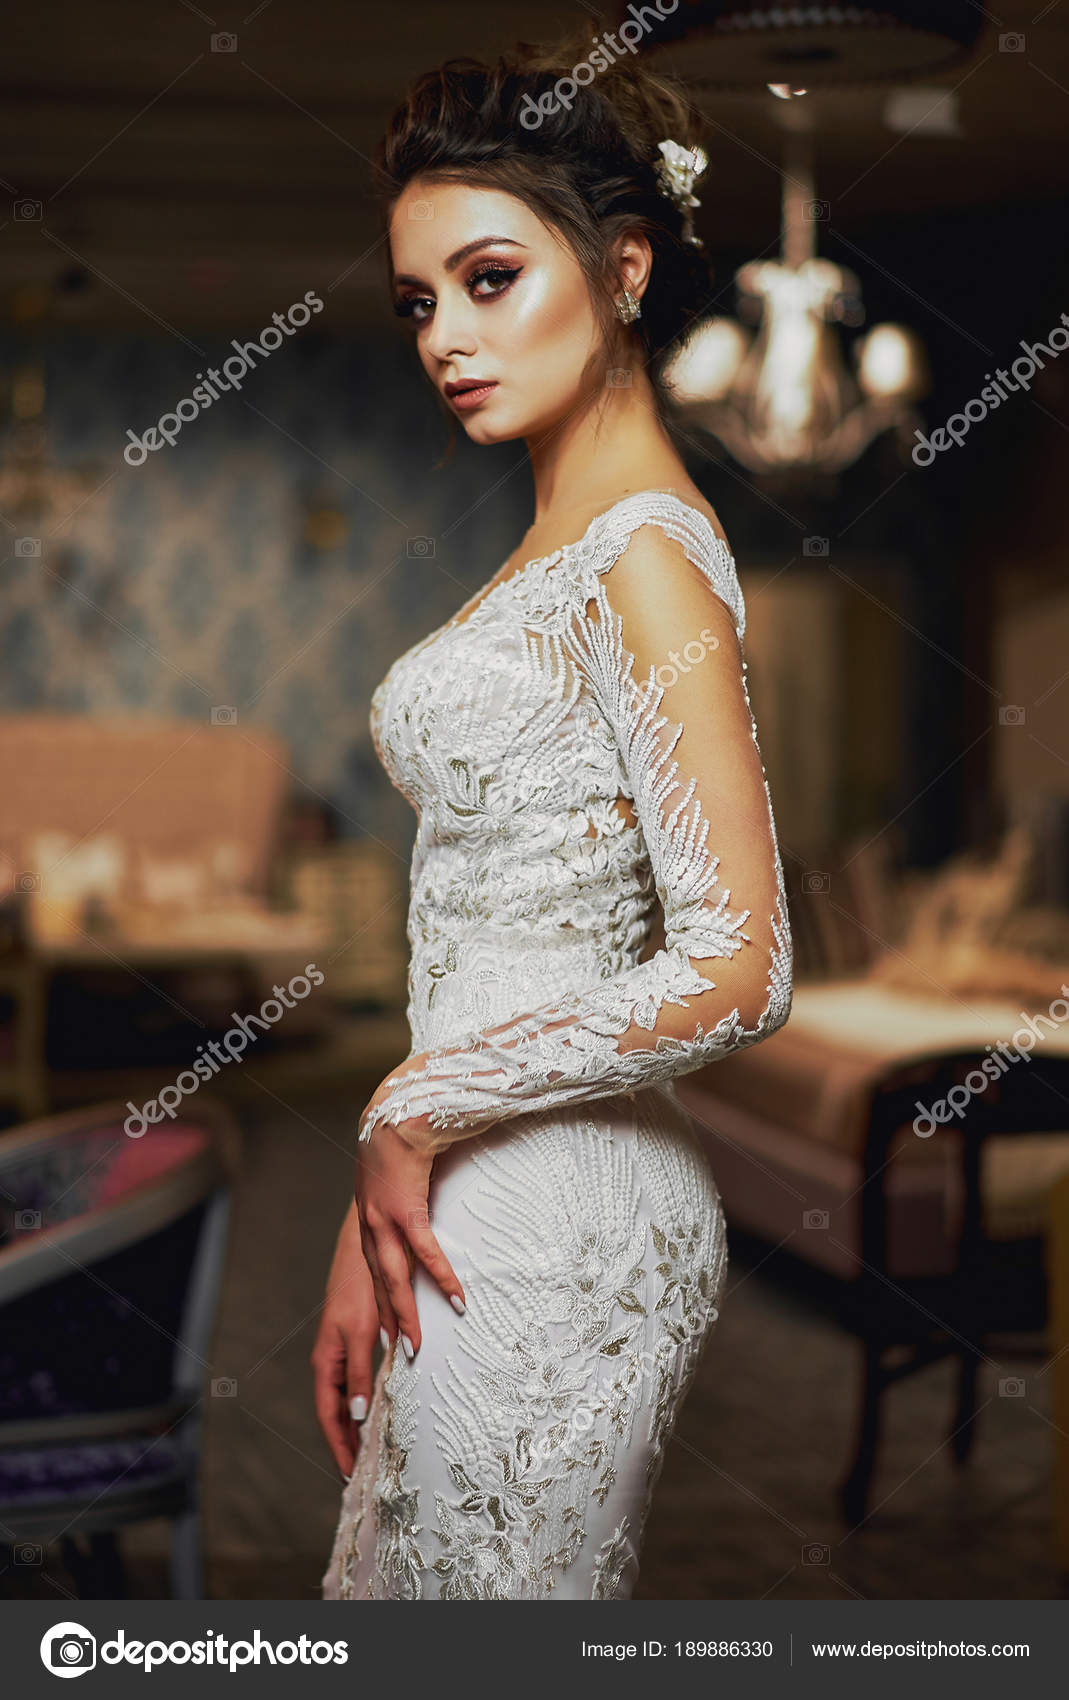 Robe blanche longue luxe